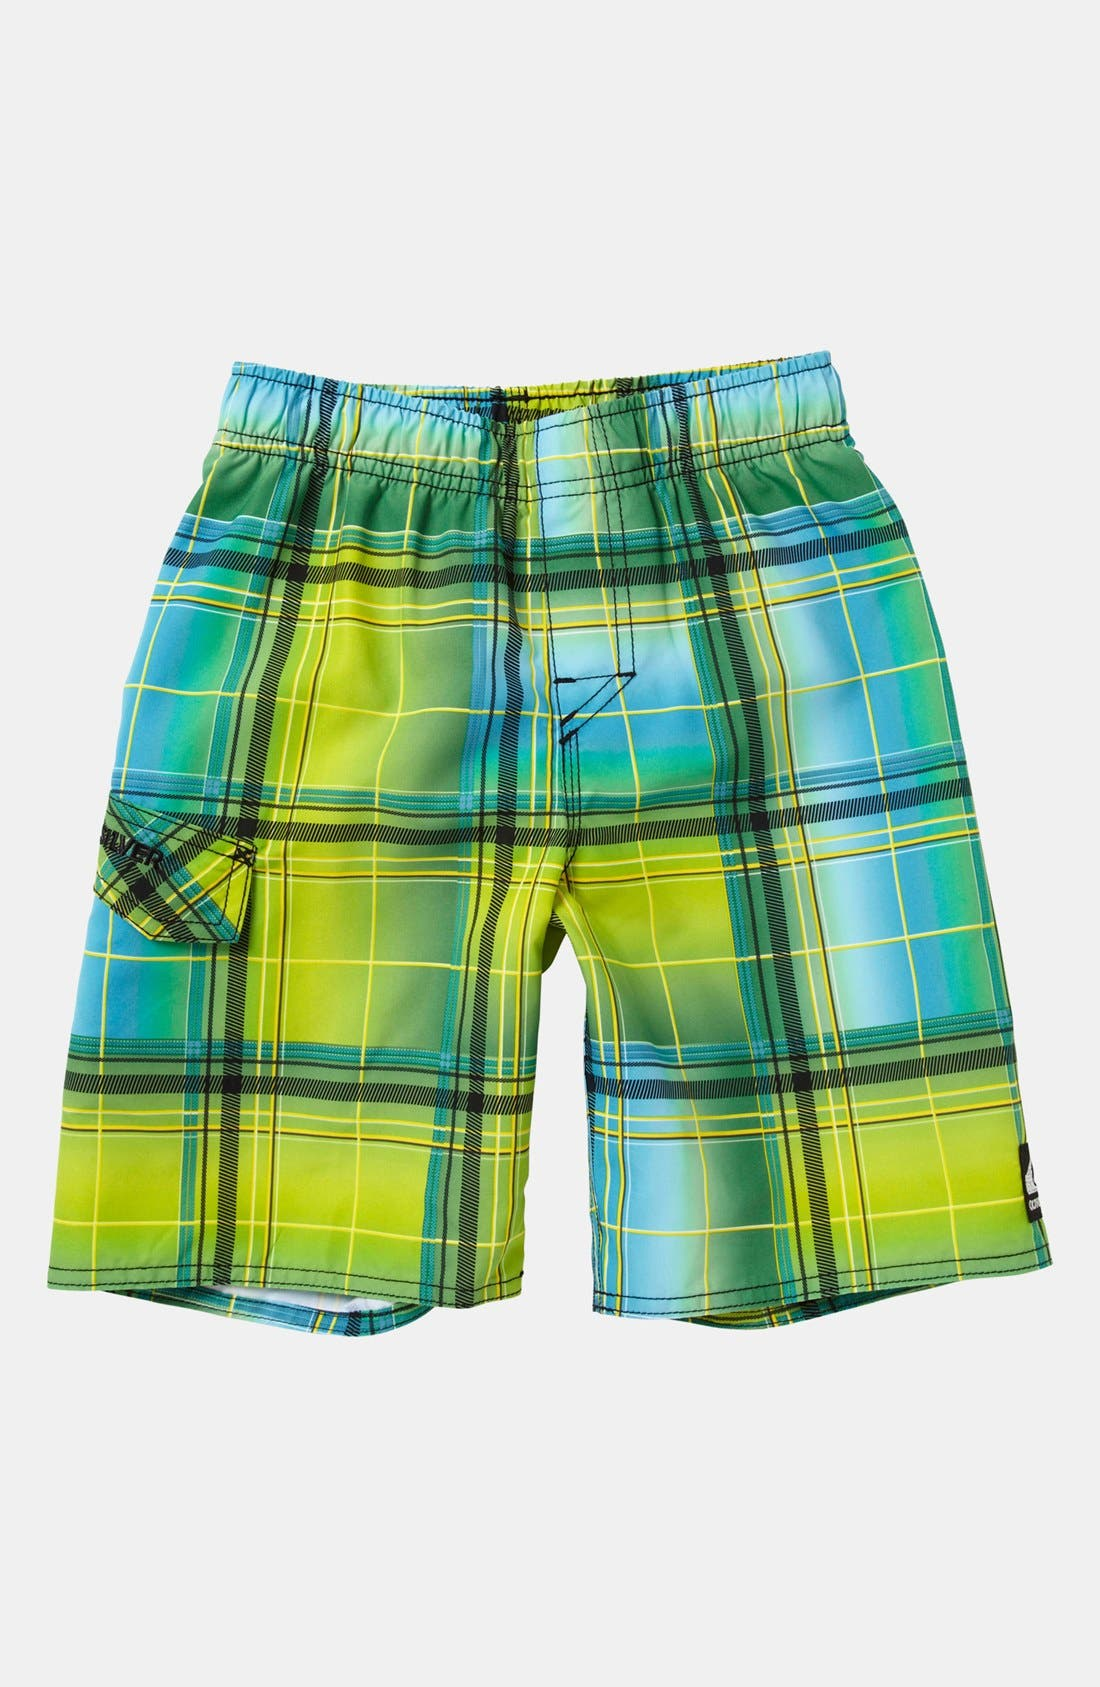 Main Image - Quiksilver 'Tronic' Board Shorts (Toddler Boys)